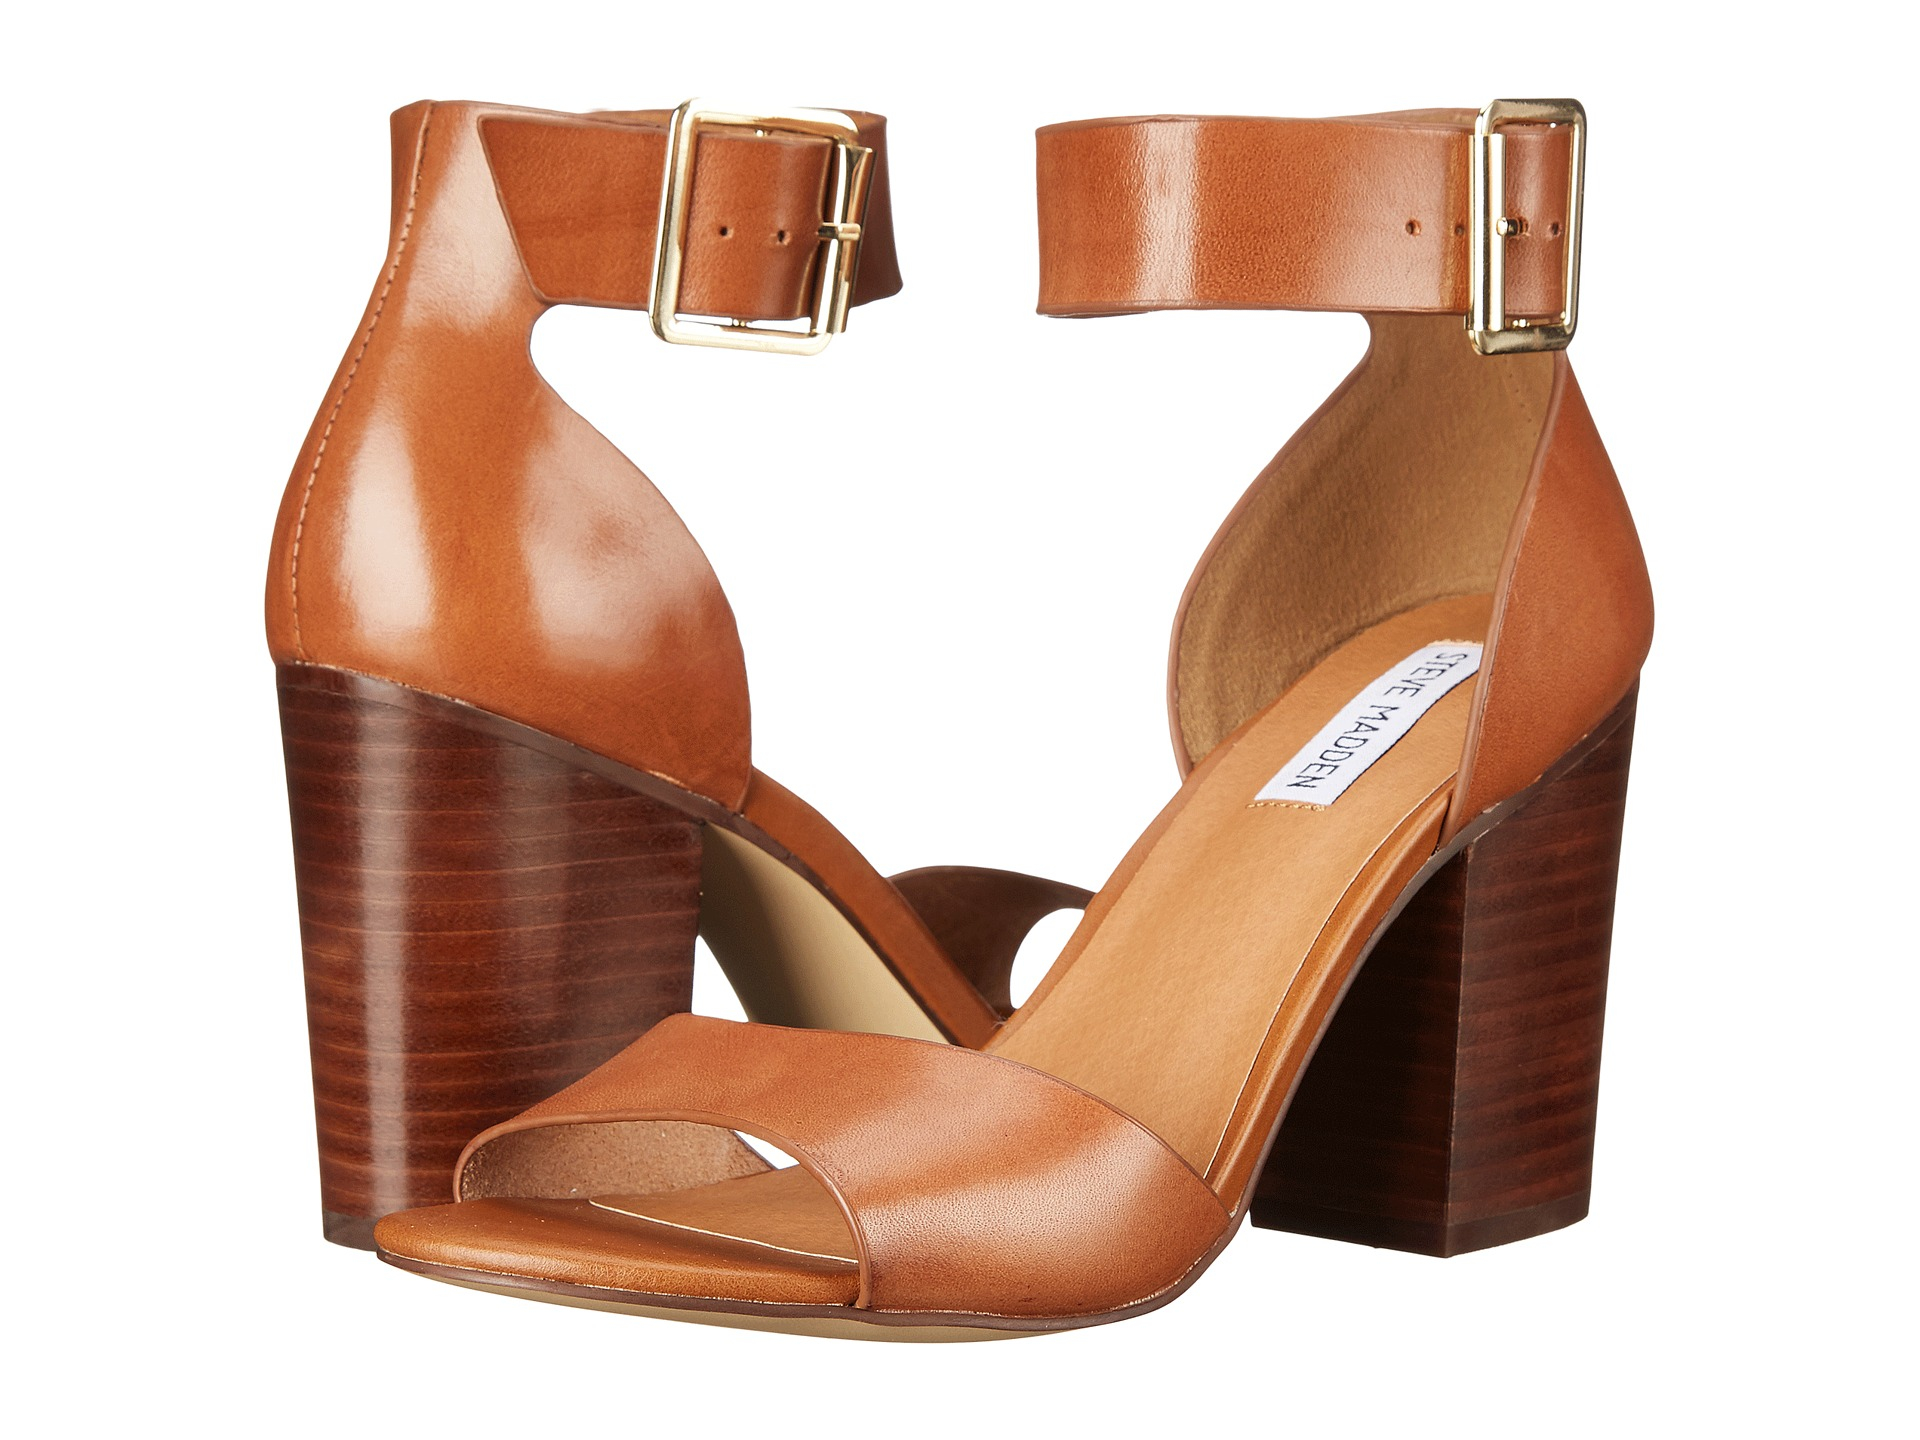 b61774a3dae Lyst - Steve Madden Estoria in Brown